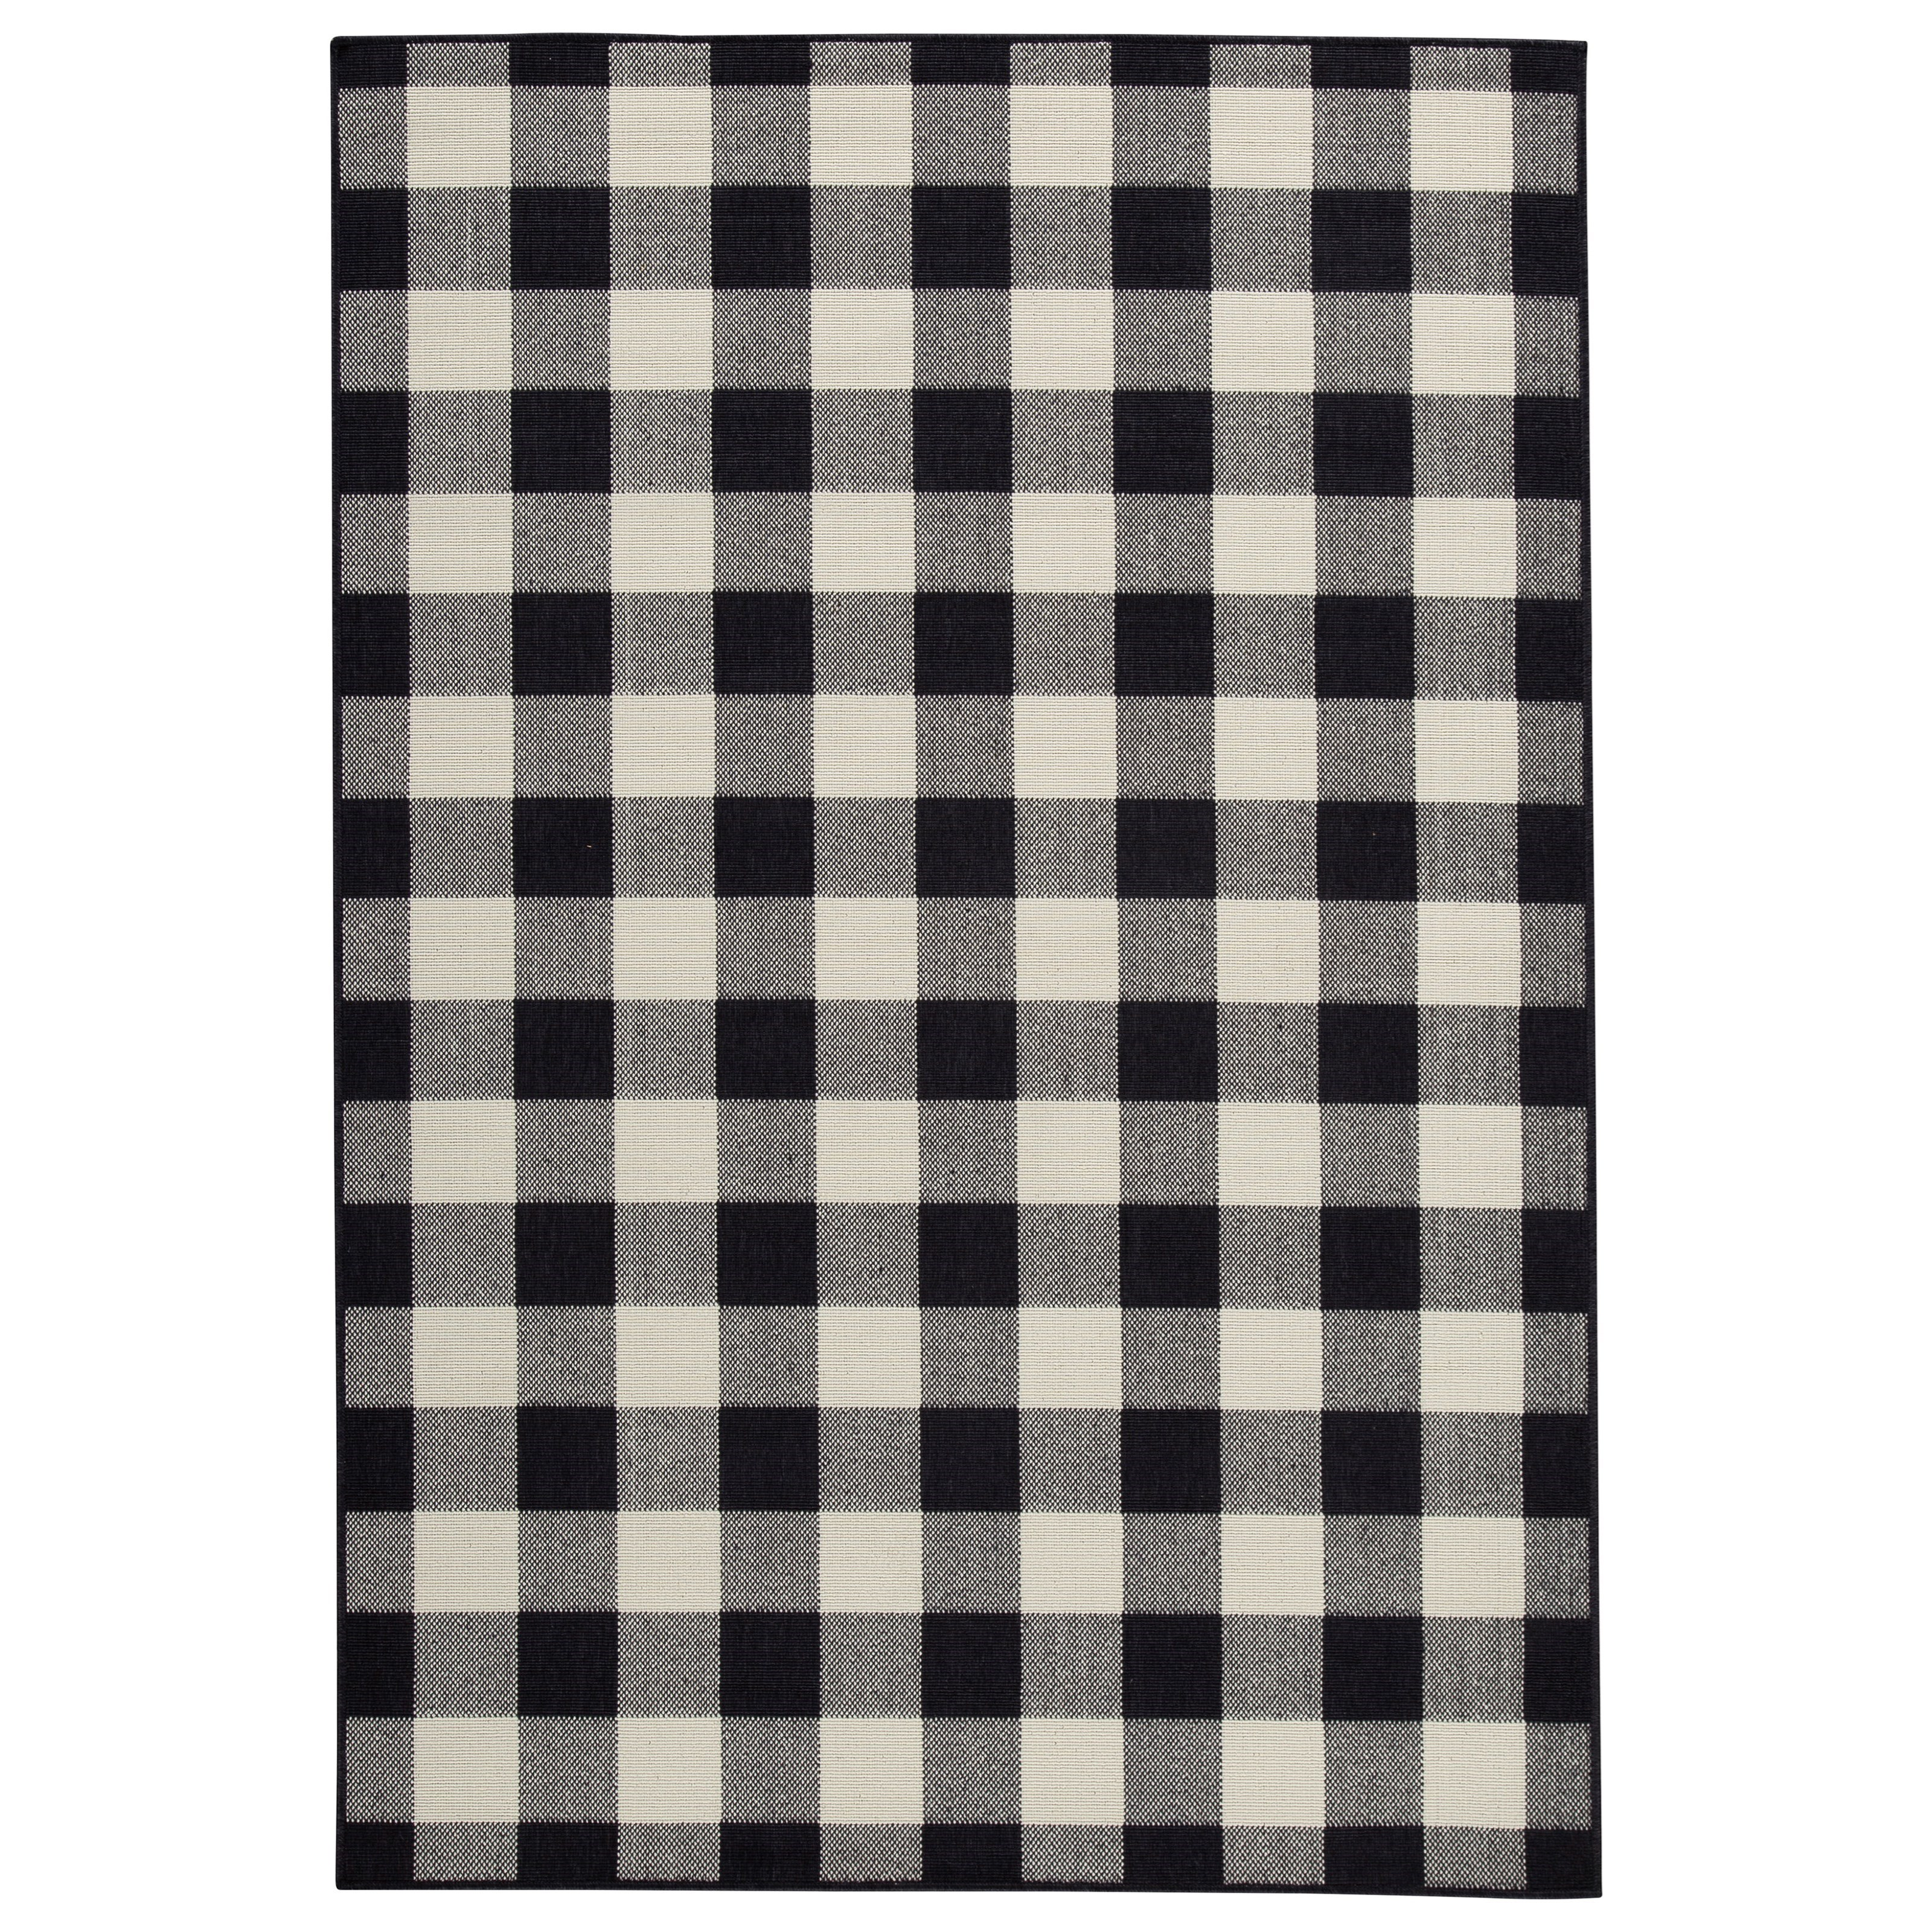 Juji Black/Gray/White Medium Rug